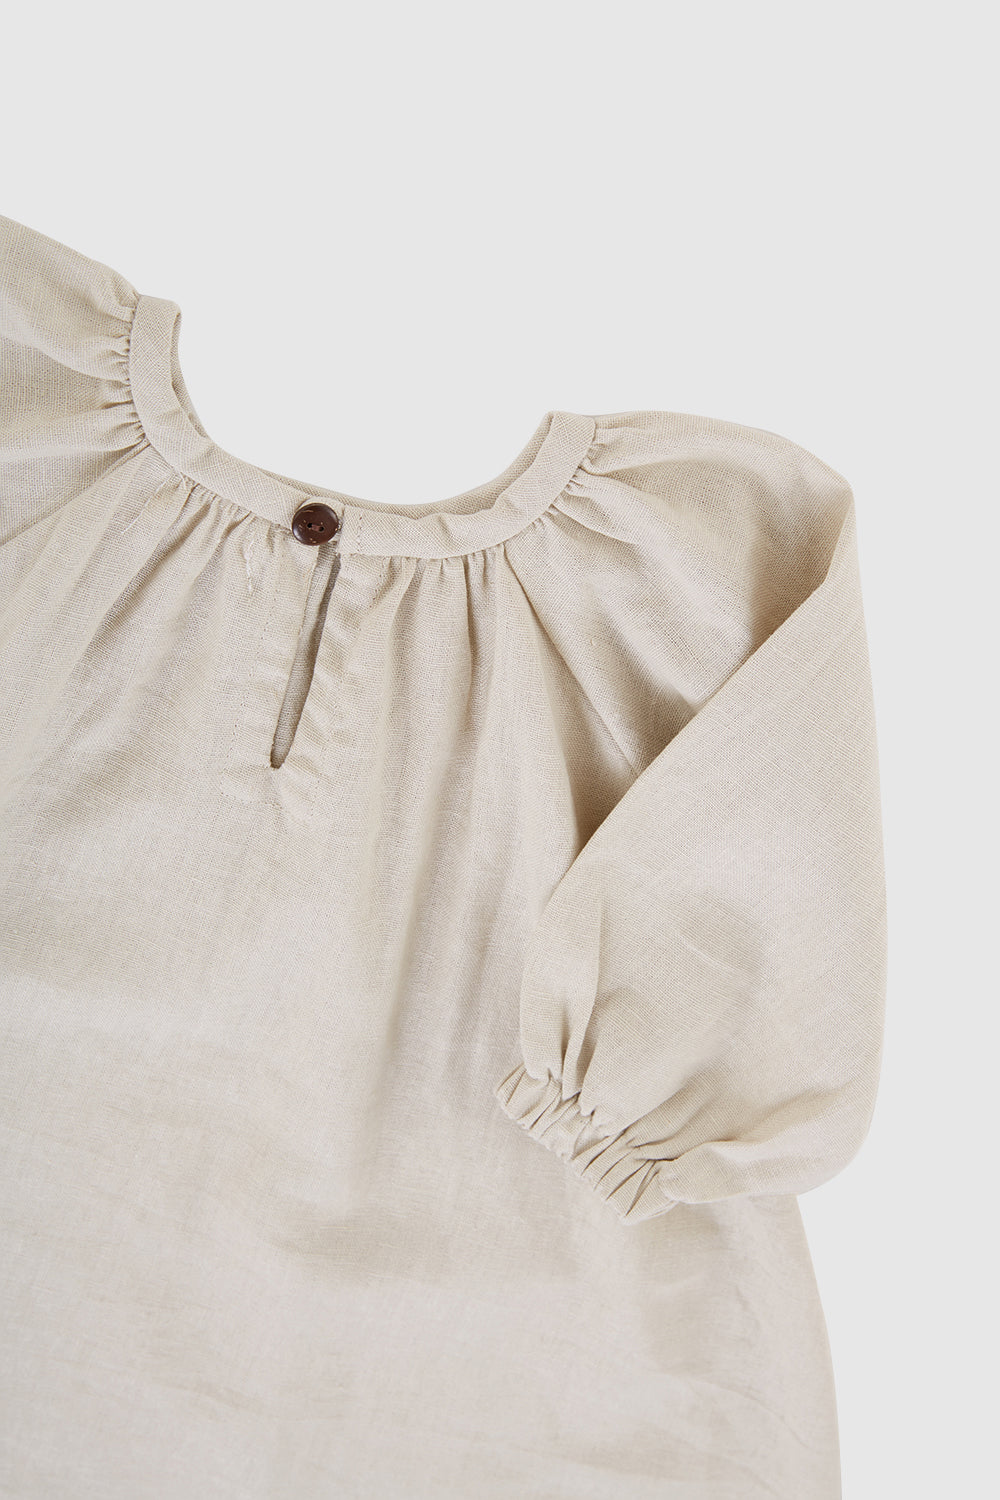 Meadow Baby Padma Dress In Oat